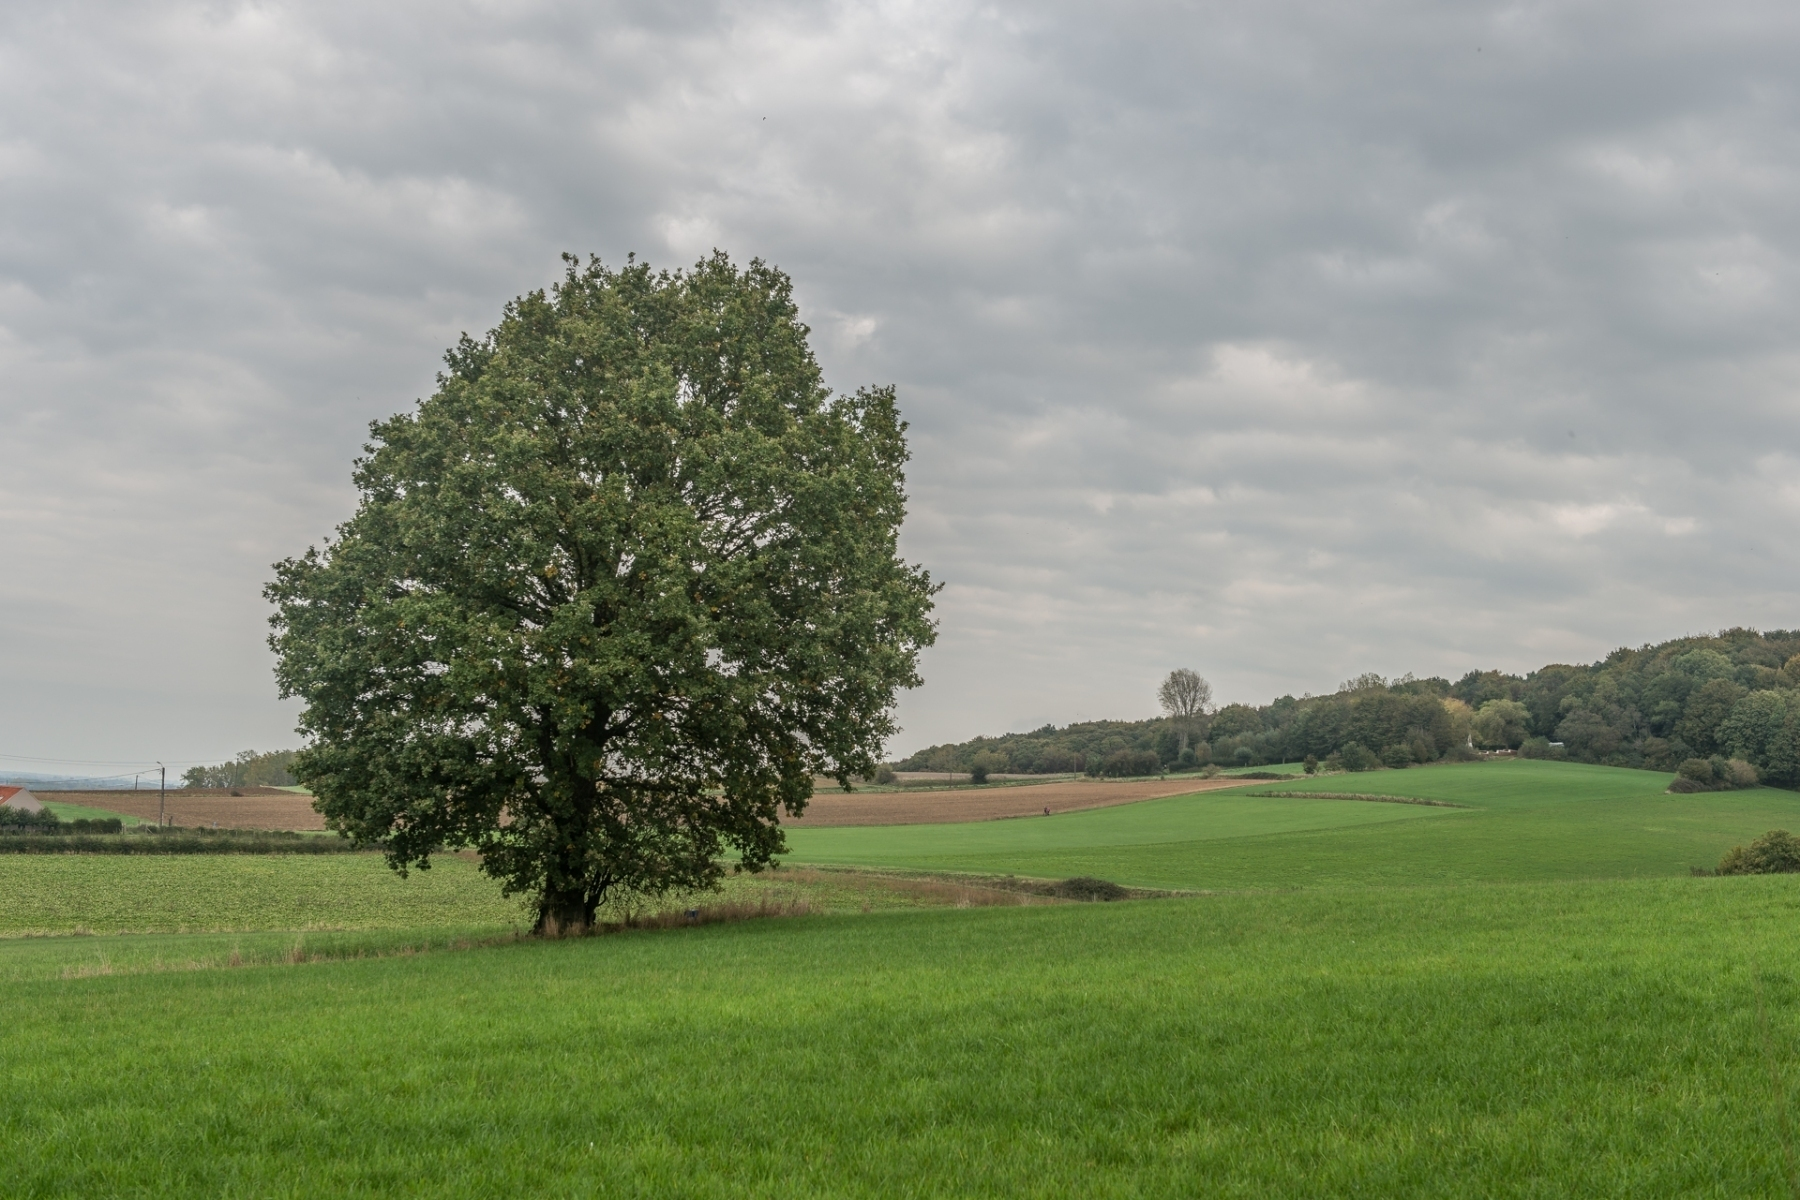 Region-solitary tree